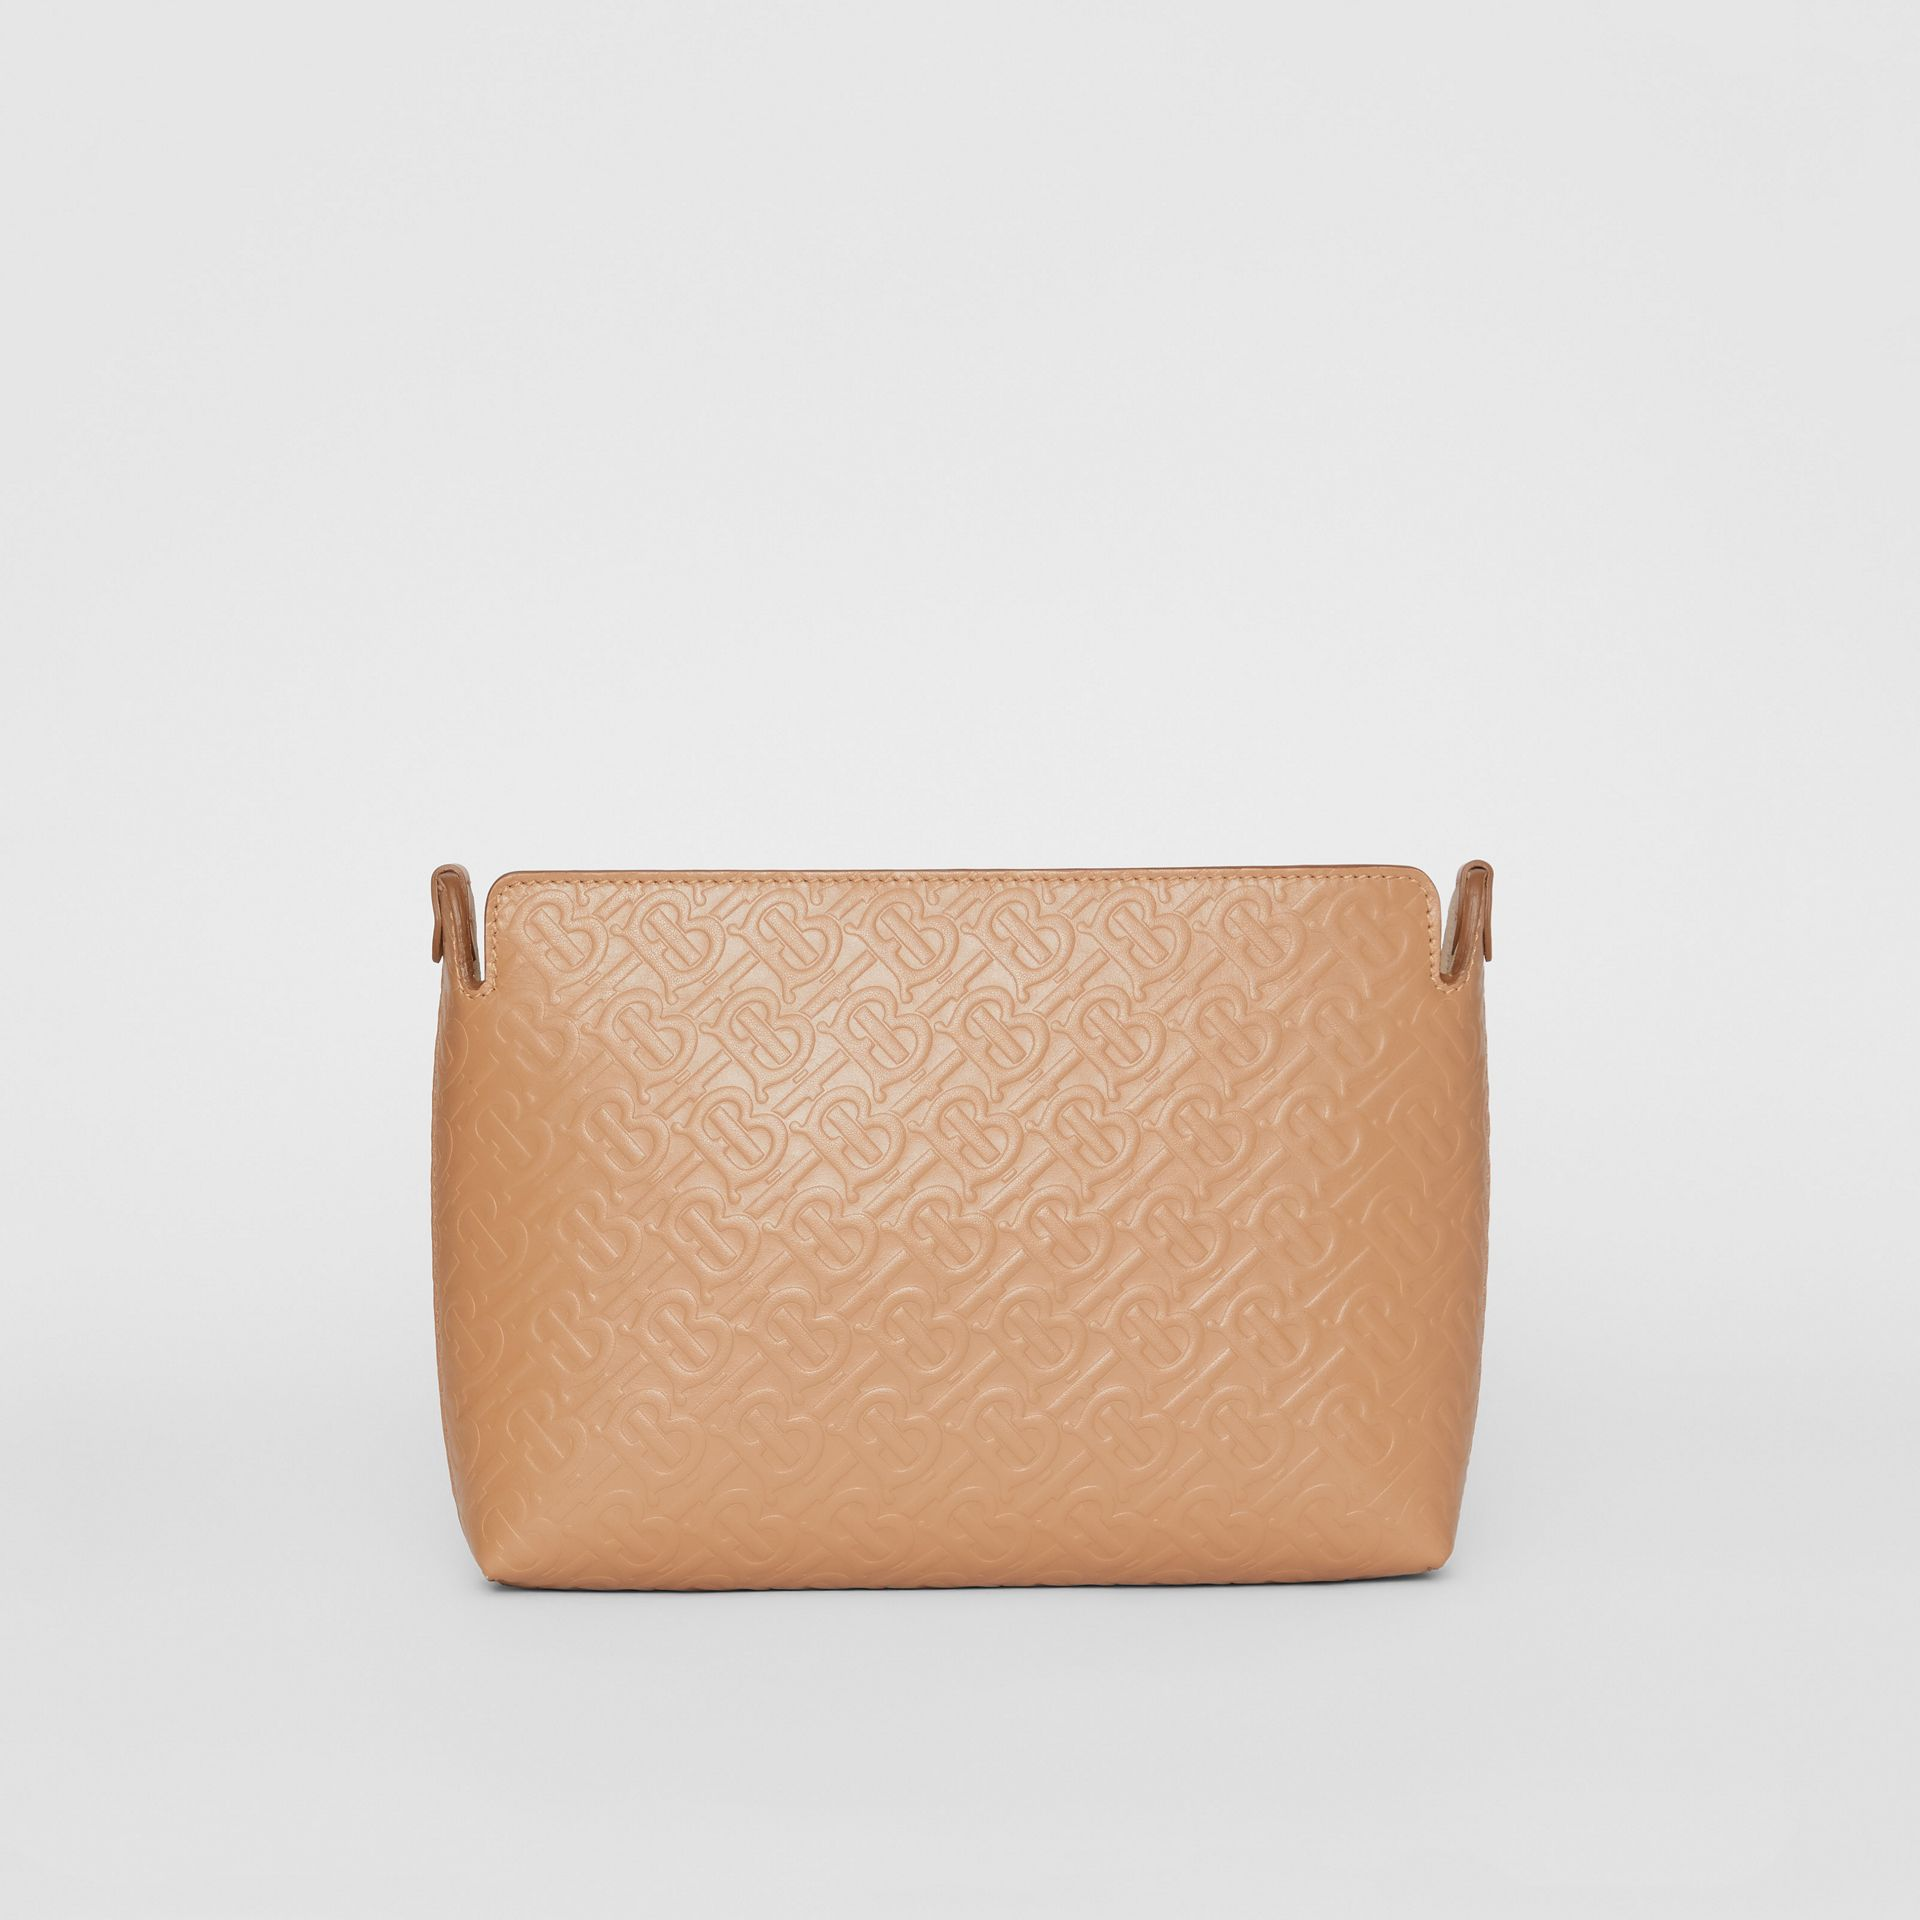 Medium Monogram Leather Clutch in Light Camel - Women | Burberry United Kingdom - gallery image 0